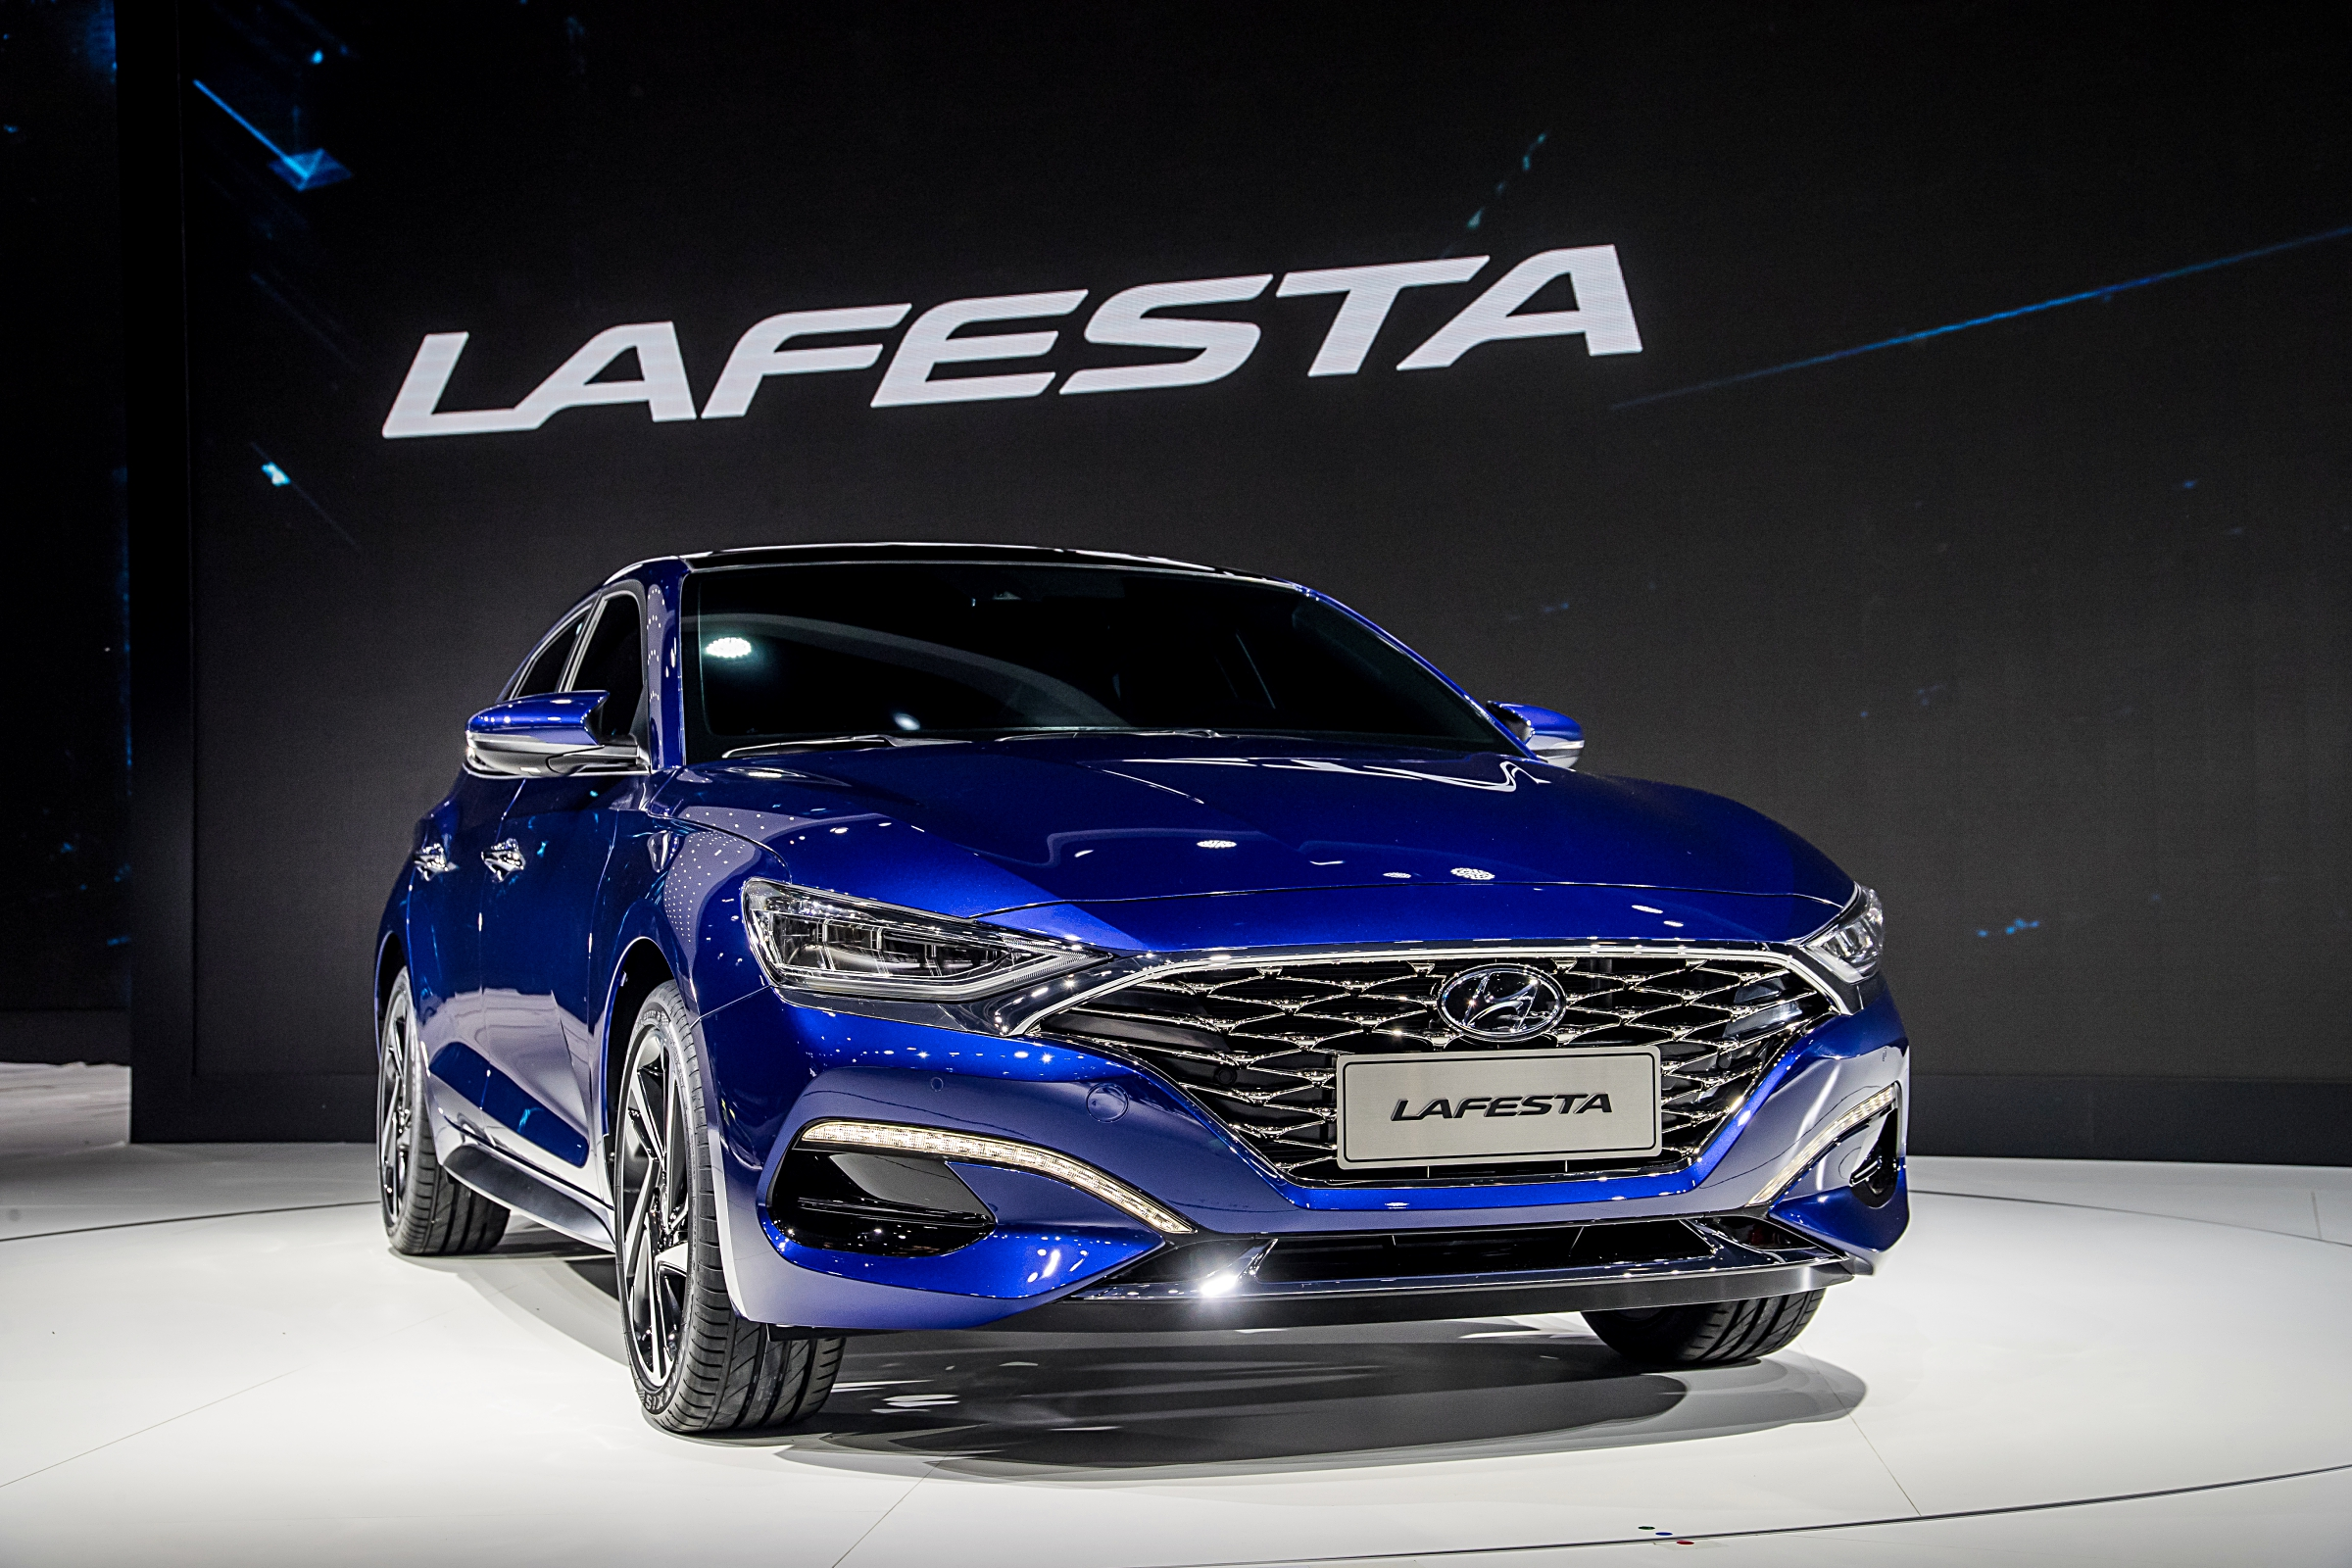 Hyundai Lafesta Sedan Revealed in China, for China